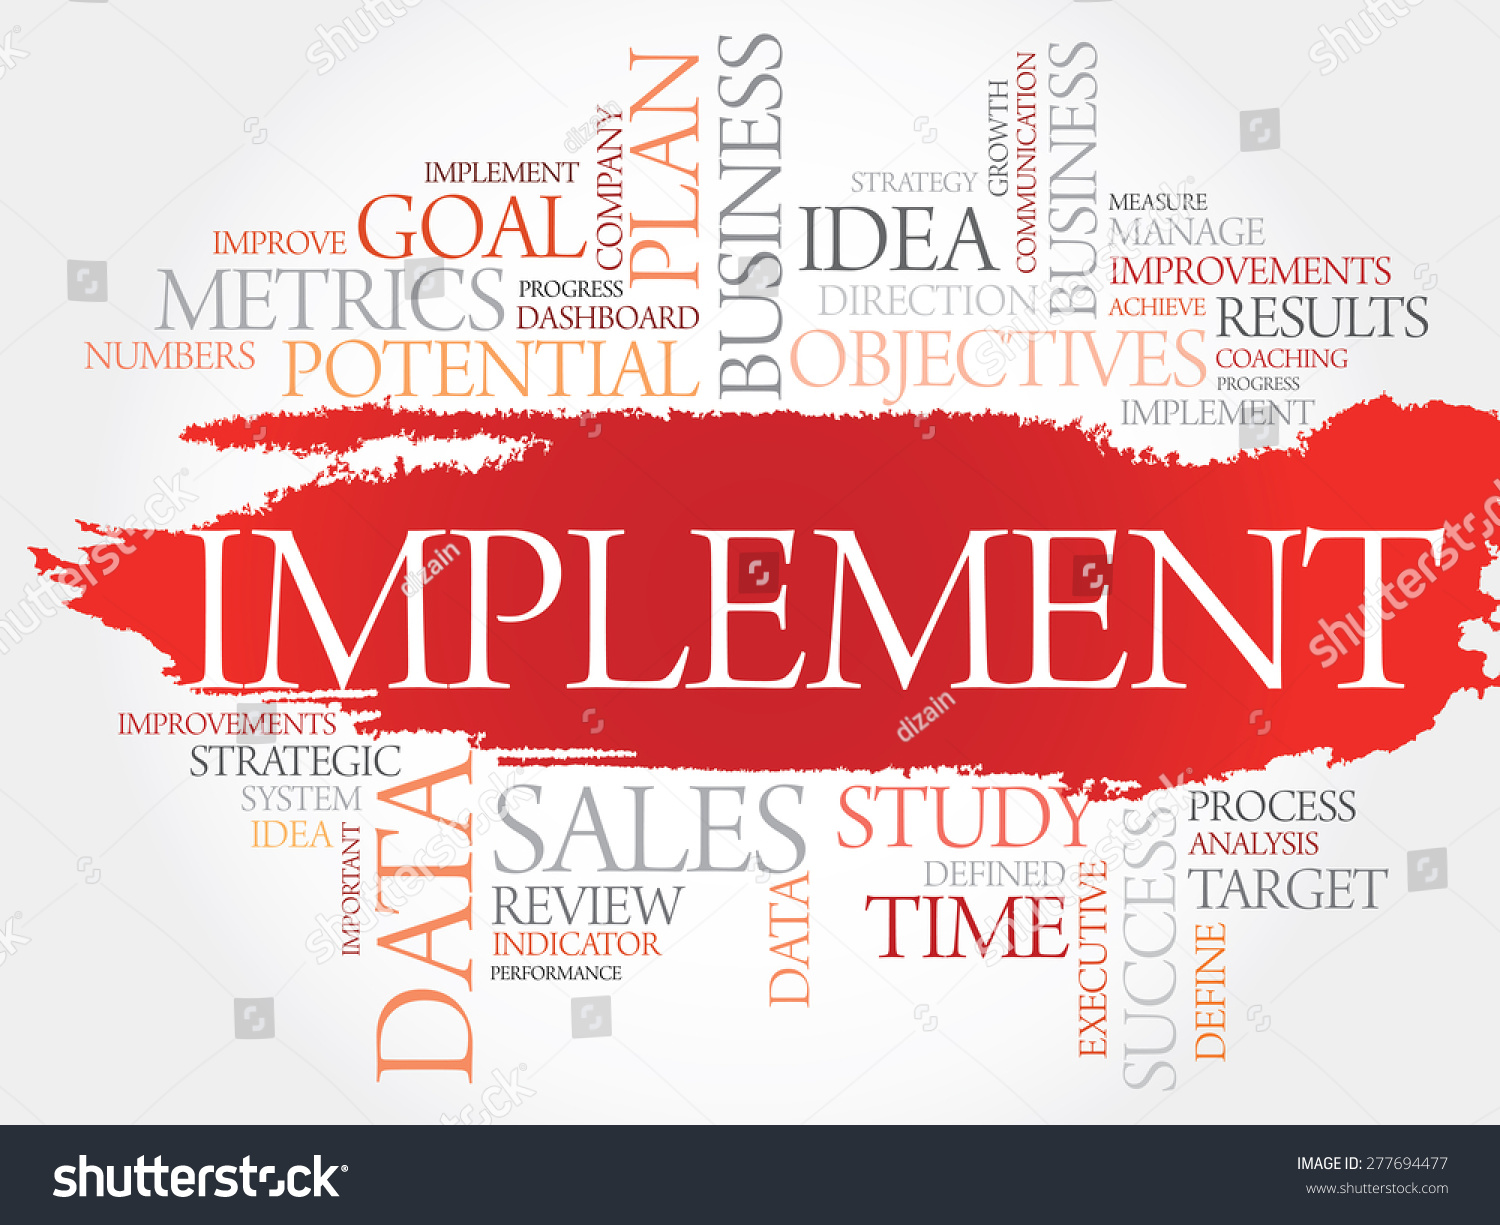 Implementing the partnership concept essay